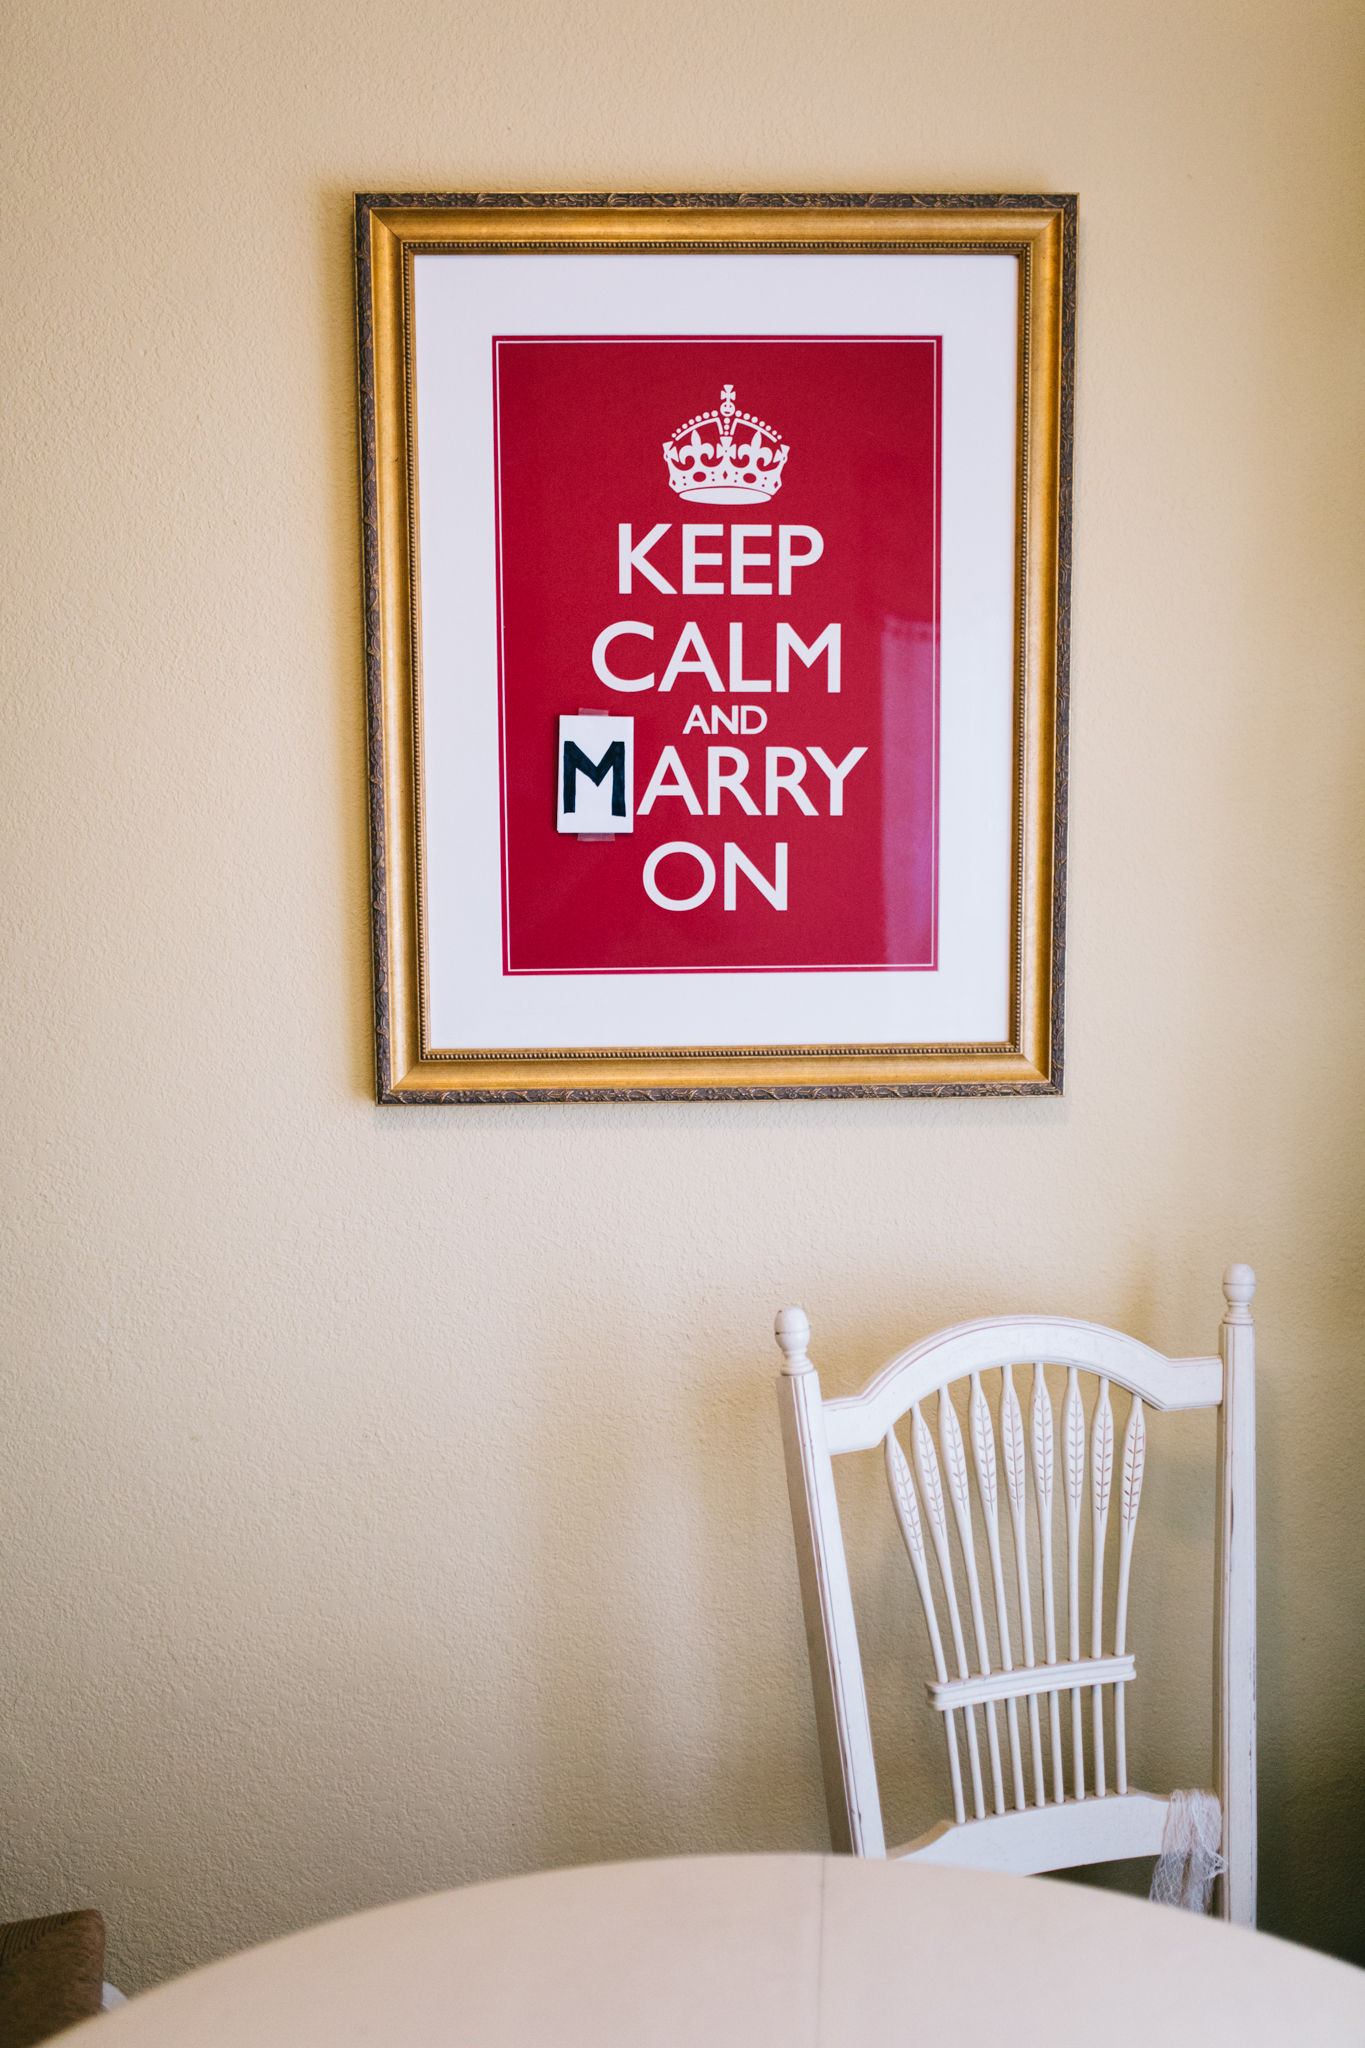 keep_calm_marry_on